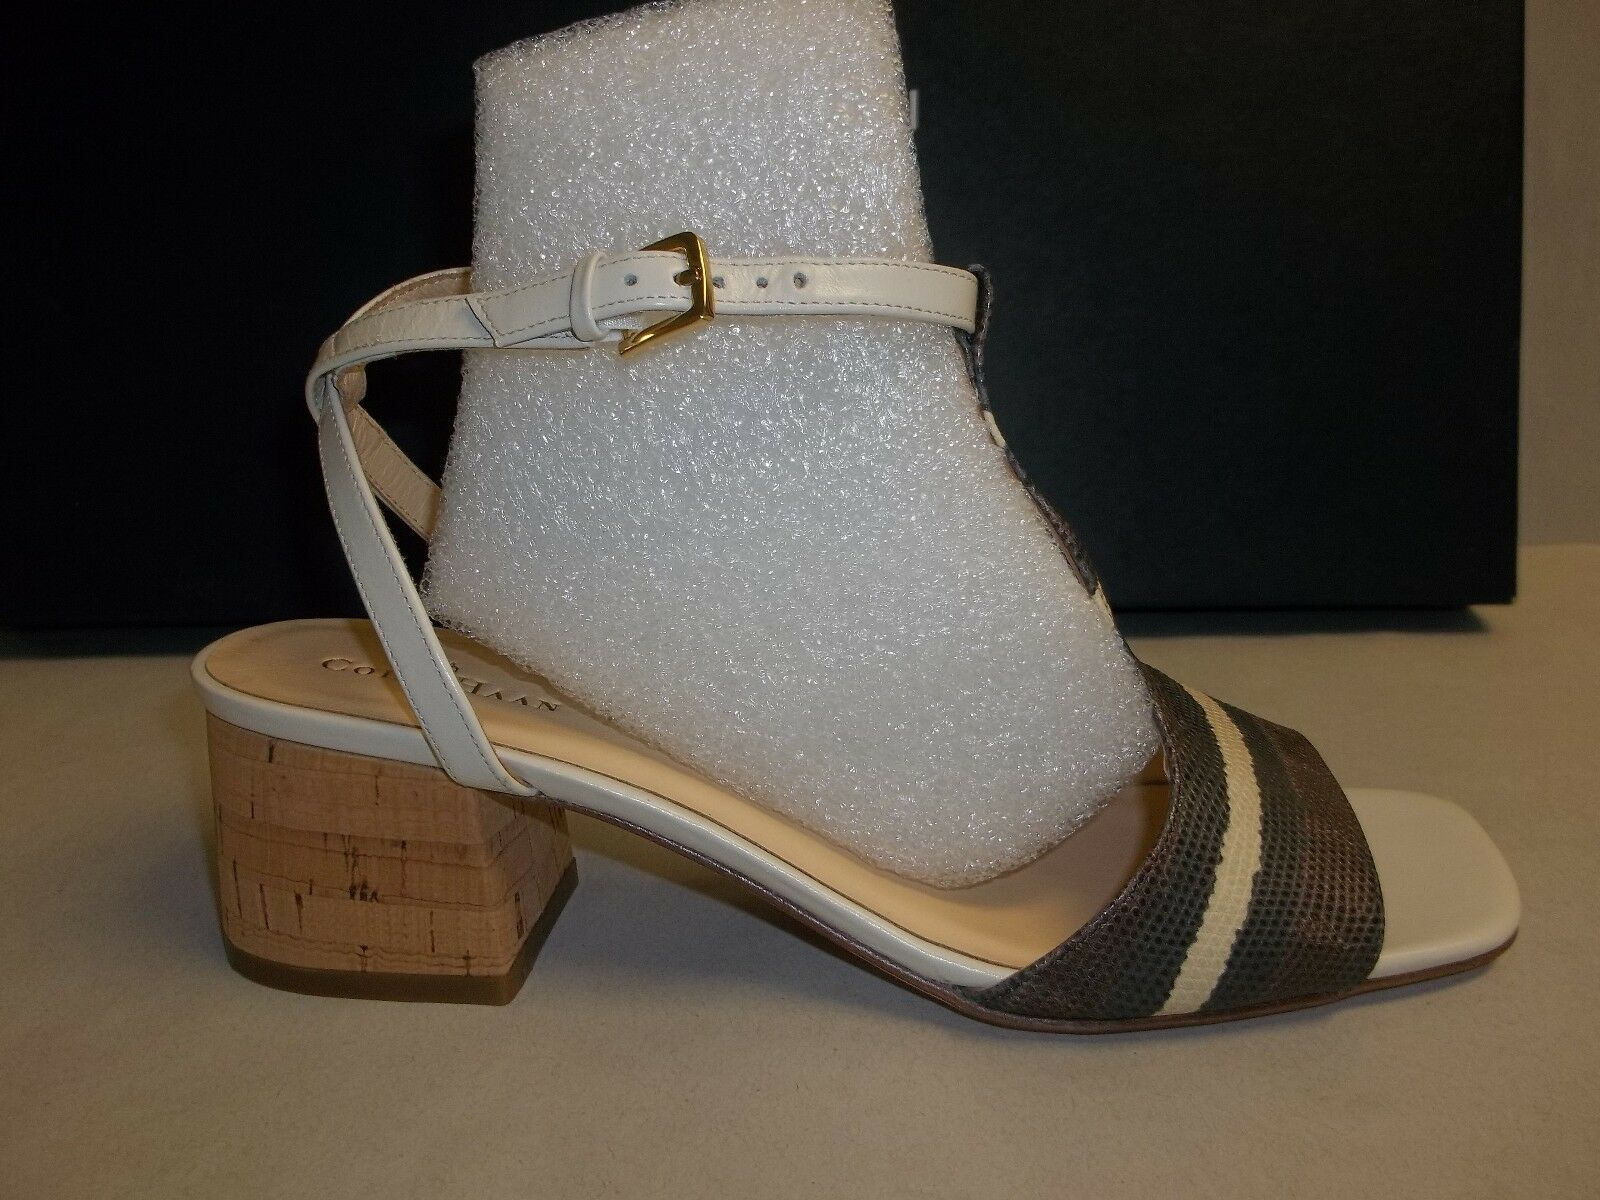 Cole Haan Size 6.5 M LUCI LOW Striped Chesnut Leather Sandals New Donna Shoes